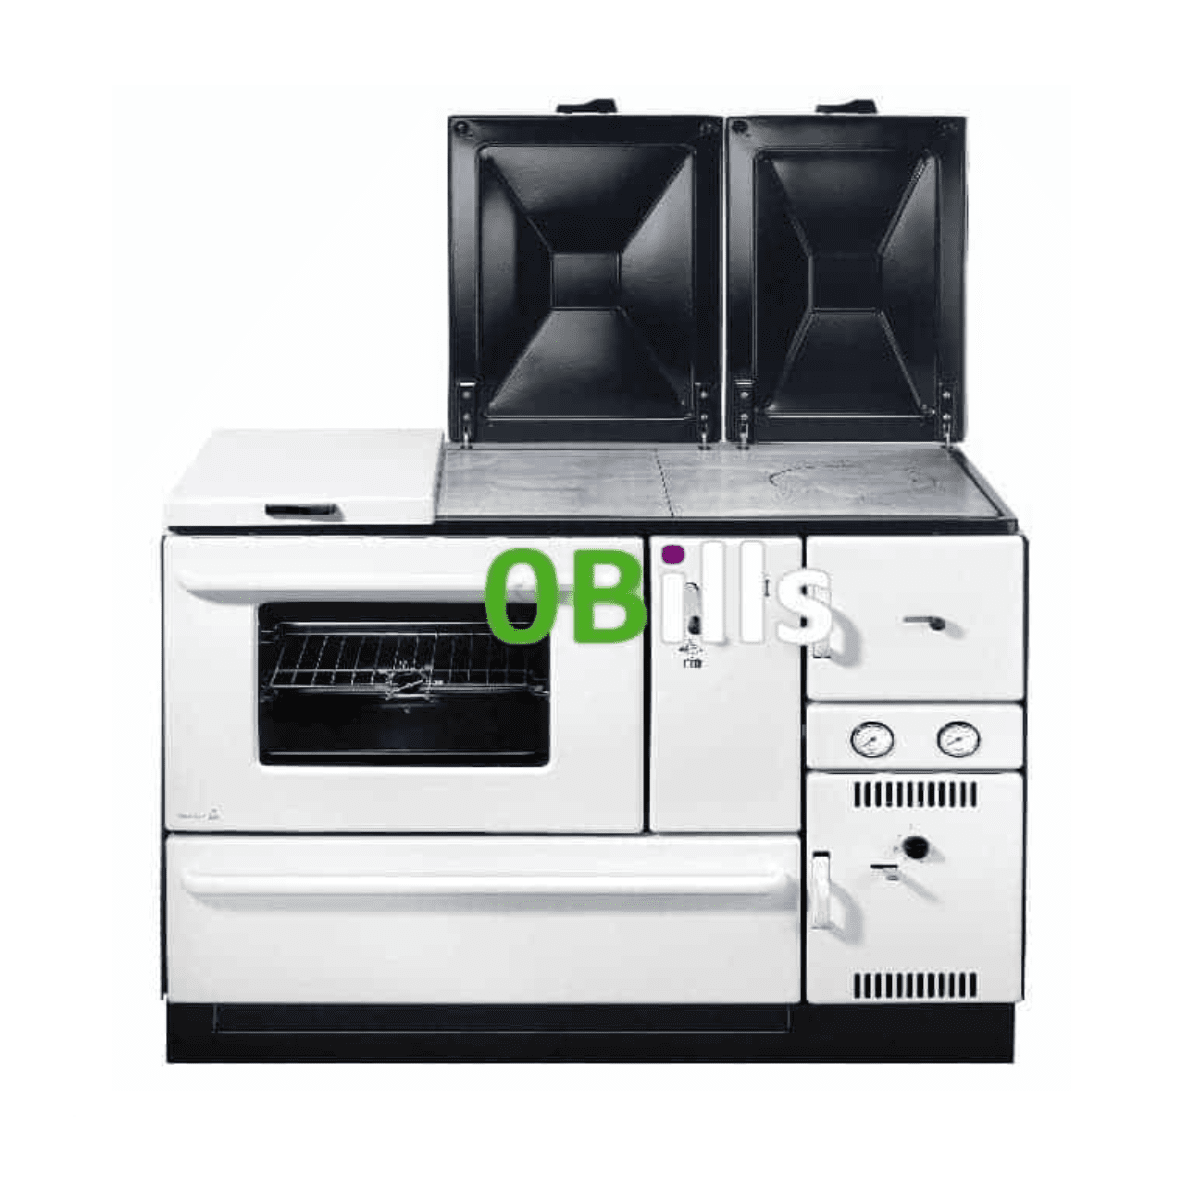 Wamsler 1100 series (K178) central heating cooker stove WHITE (Left)